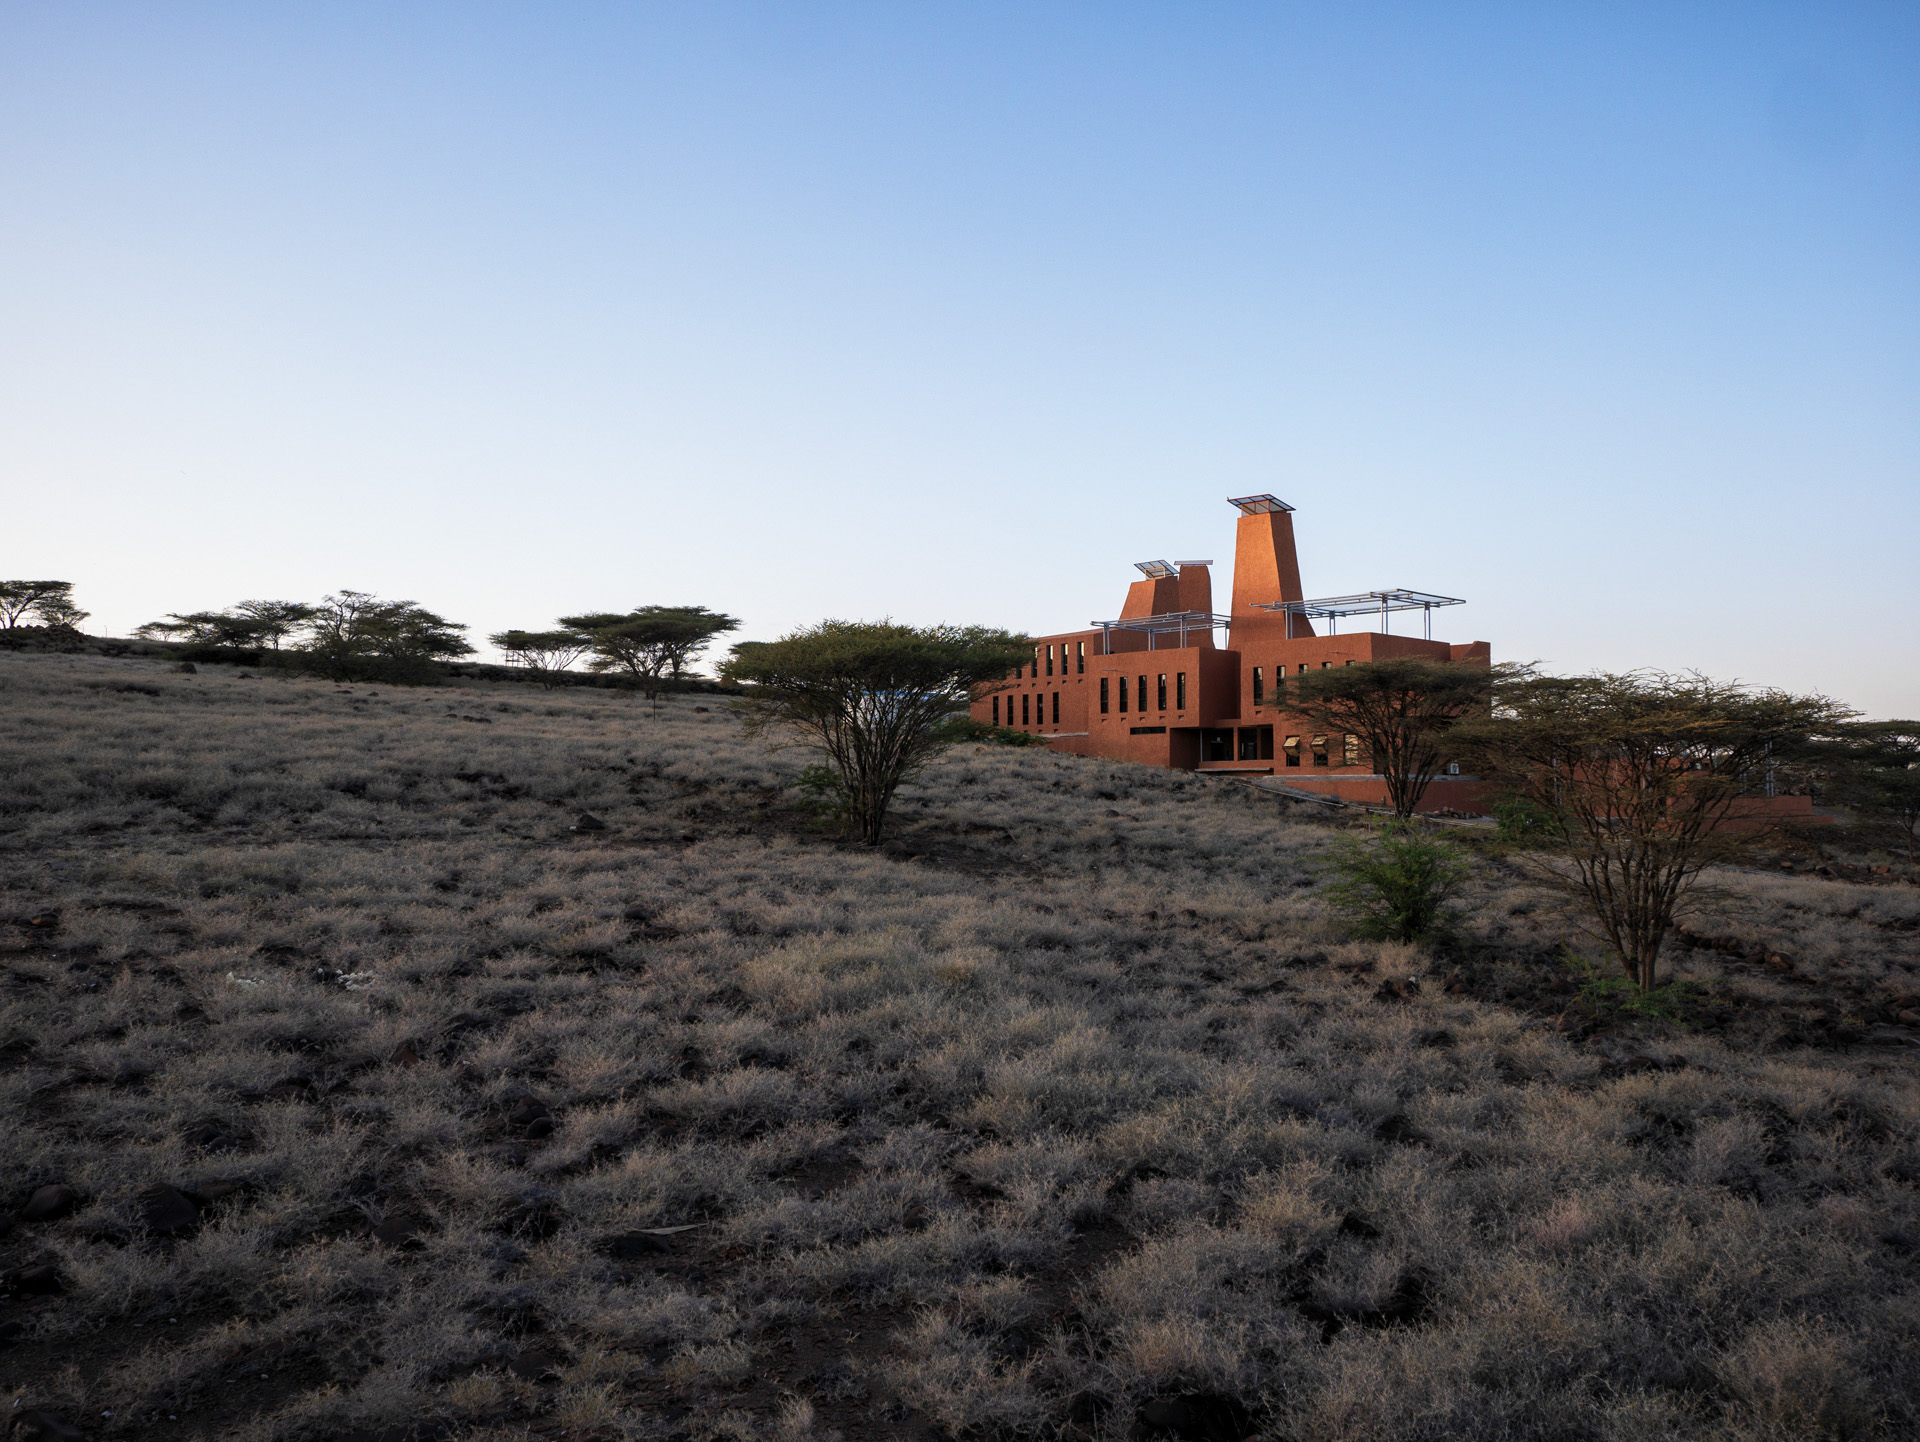 147_Startup Lions Campus Turkana located on the shore of Lake Turkana_Photo by Kinan Deeb for Kéré Architecture